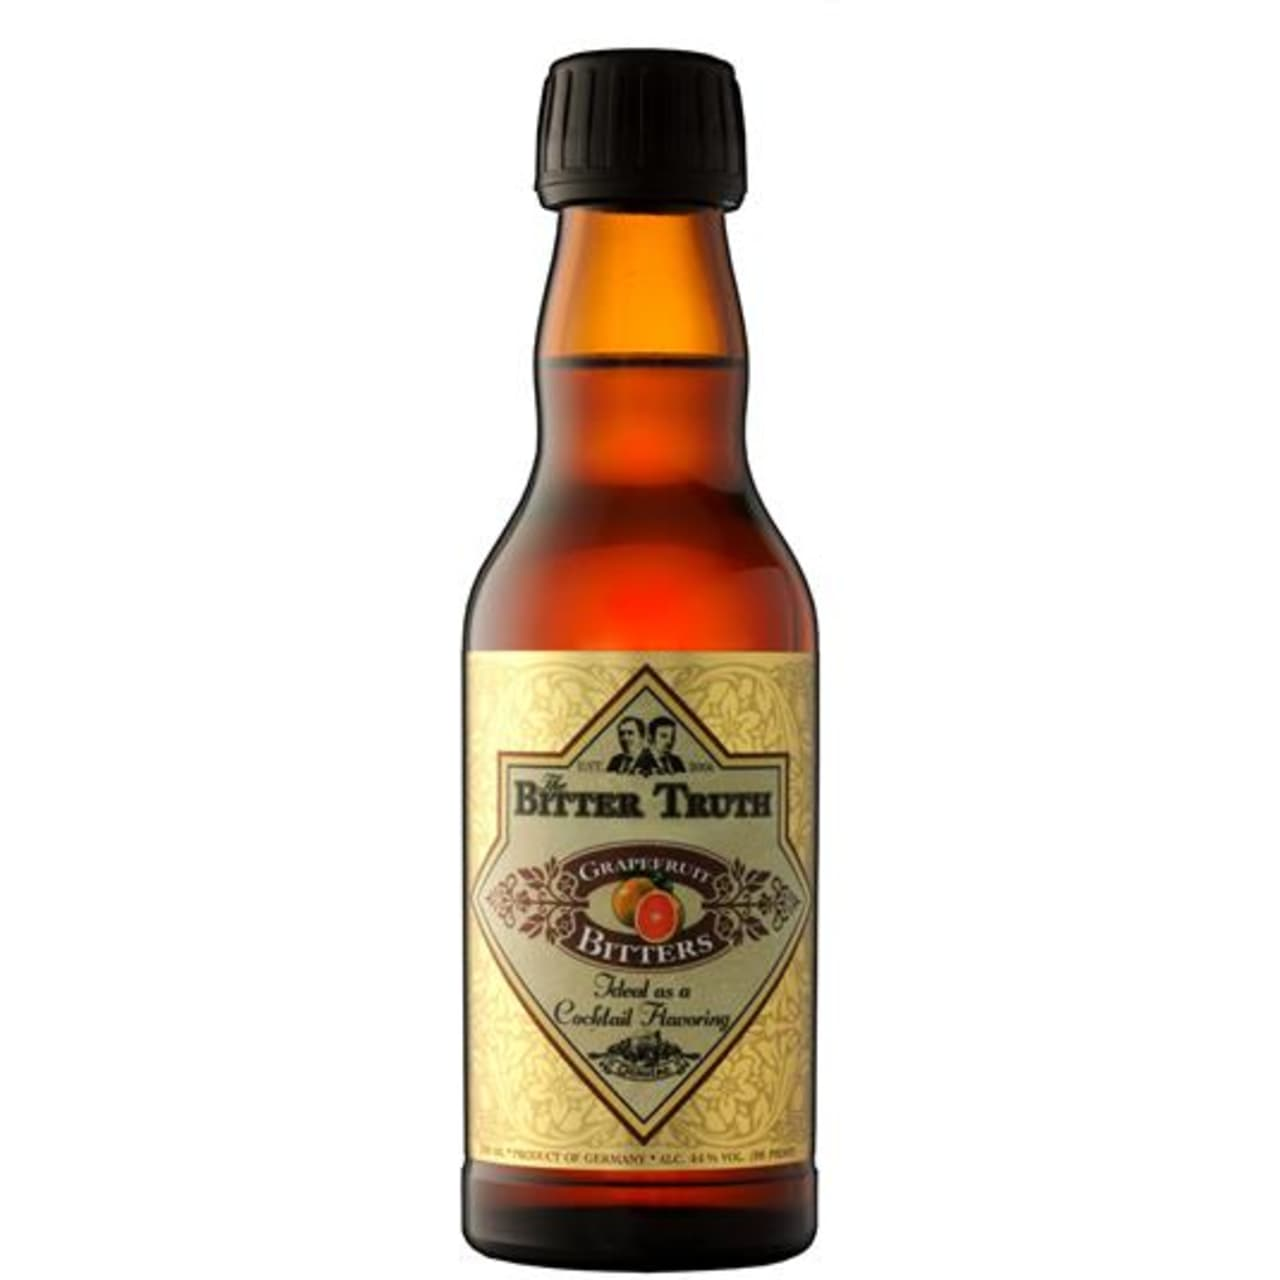 Product Image - The Bitter Truth Grapefruit Bitters